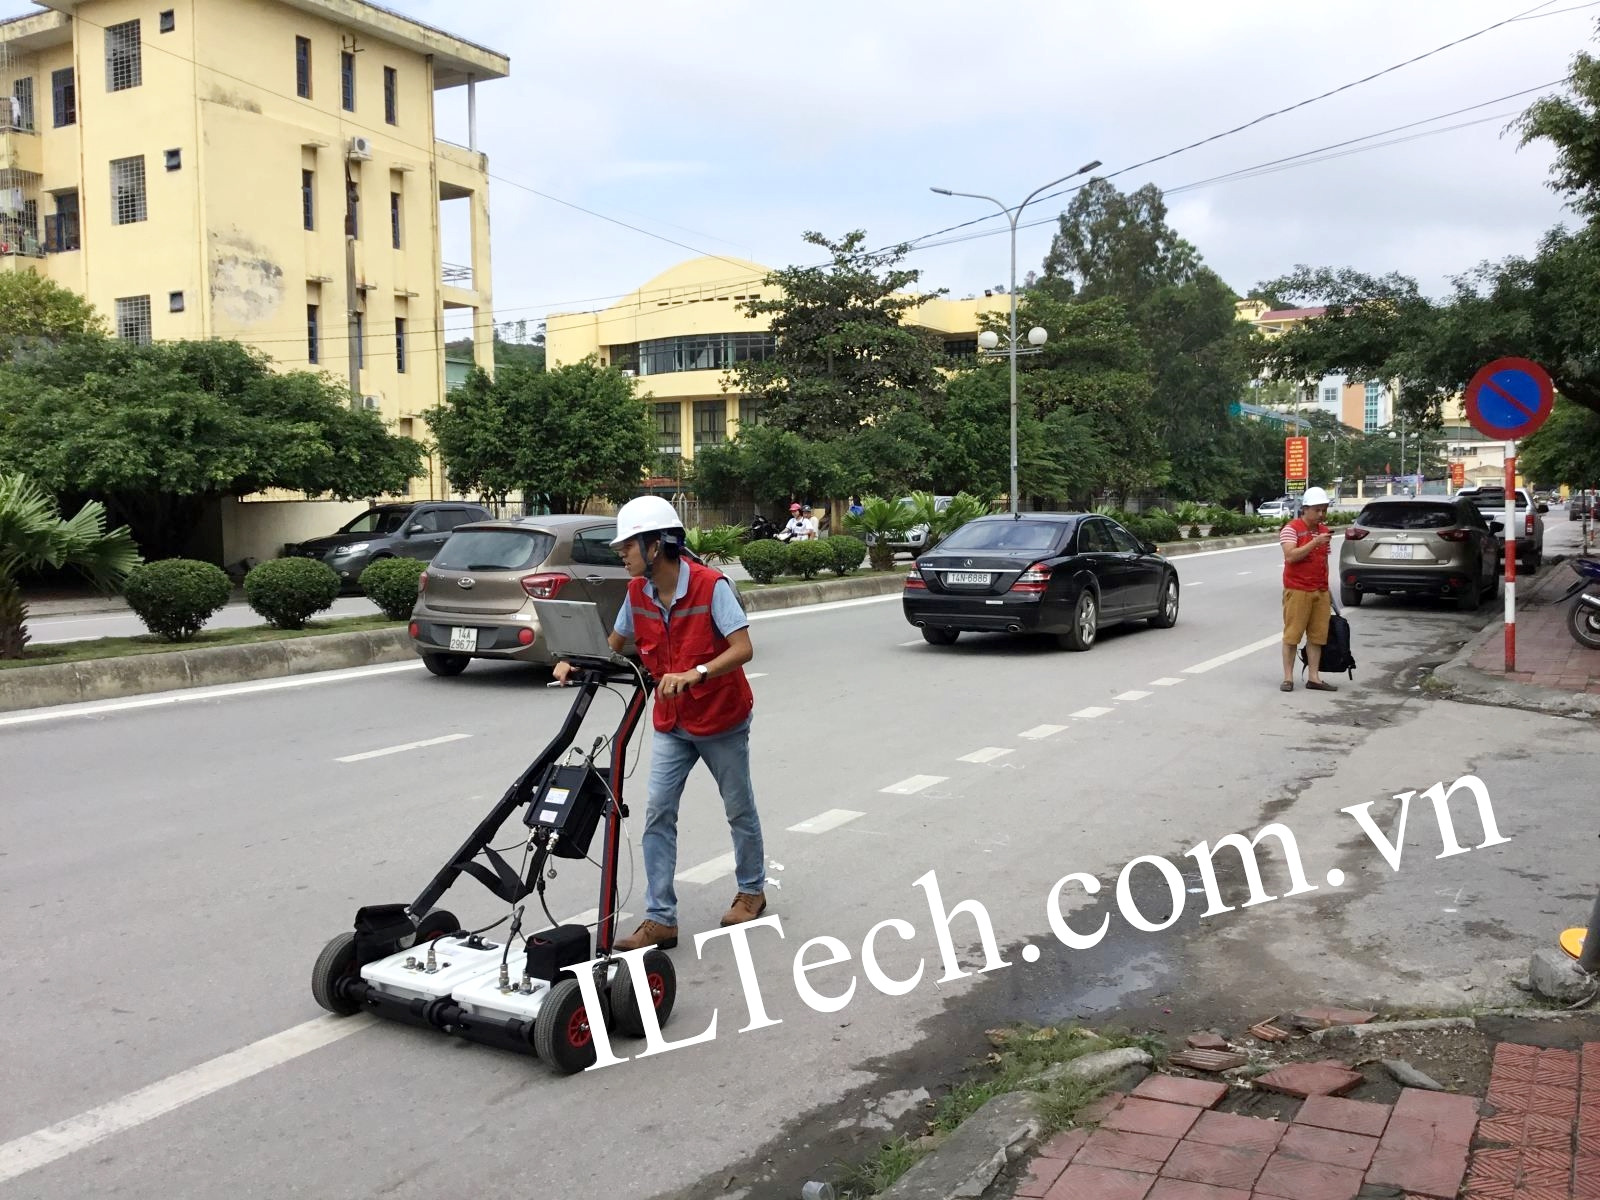 ILTech_GPR%20demonstration%20in%20Ha%20Long%20City-2.jpg